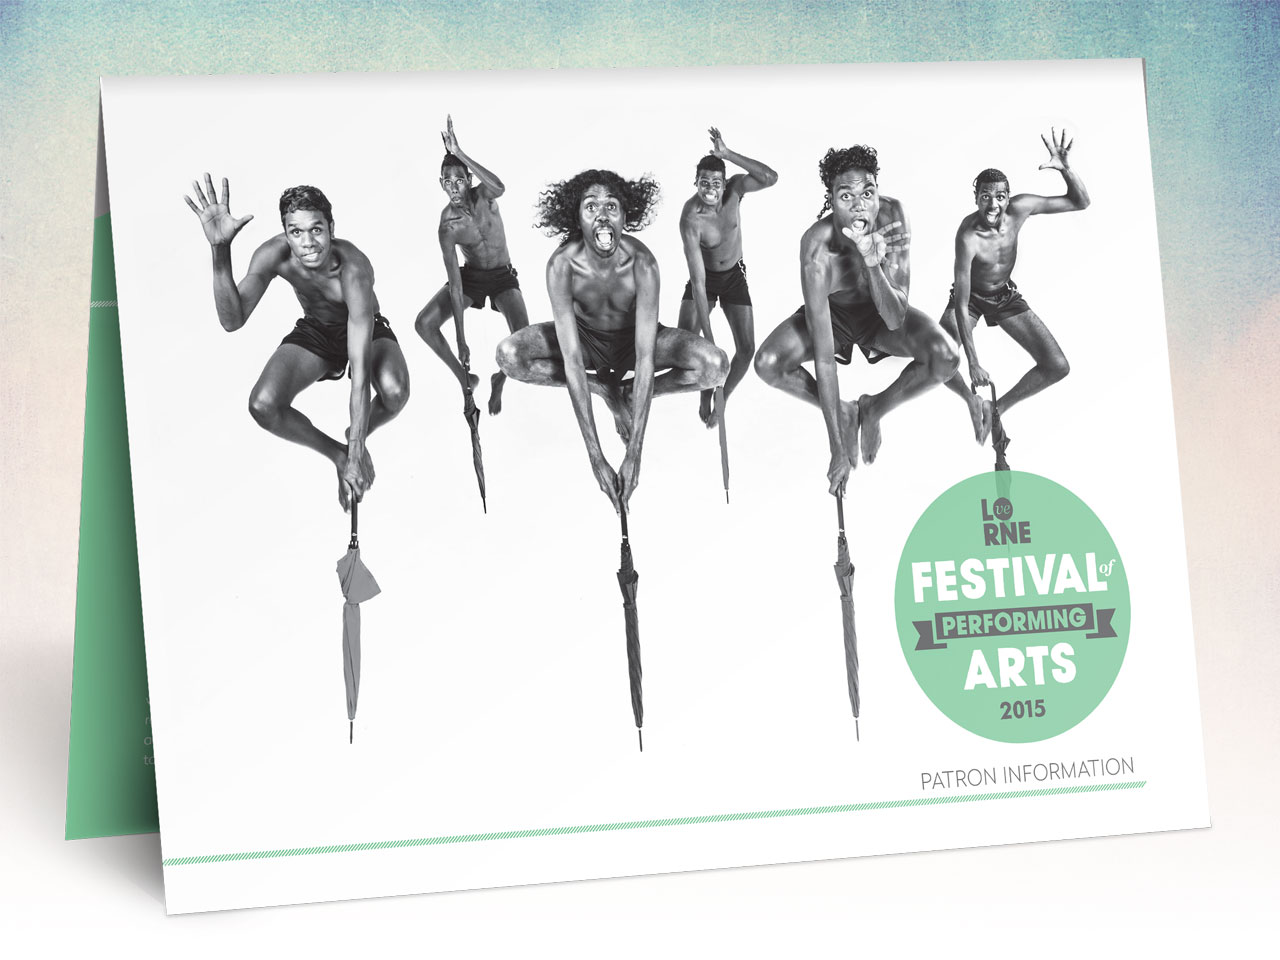 LOVE LORNE - Festival of Performing Arts Patron Information. MORRISON DESIGN Branding & Graphic Design Geelong.